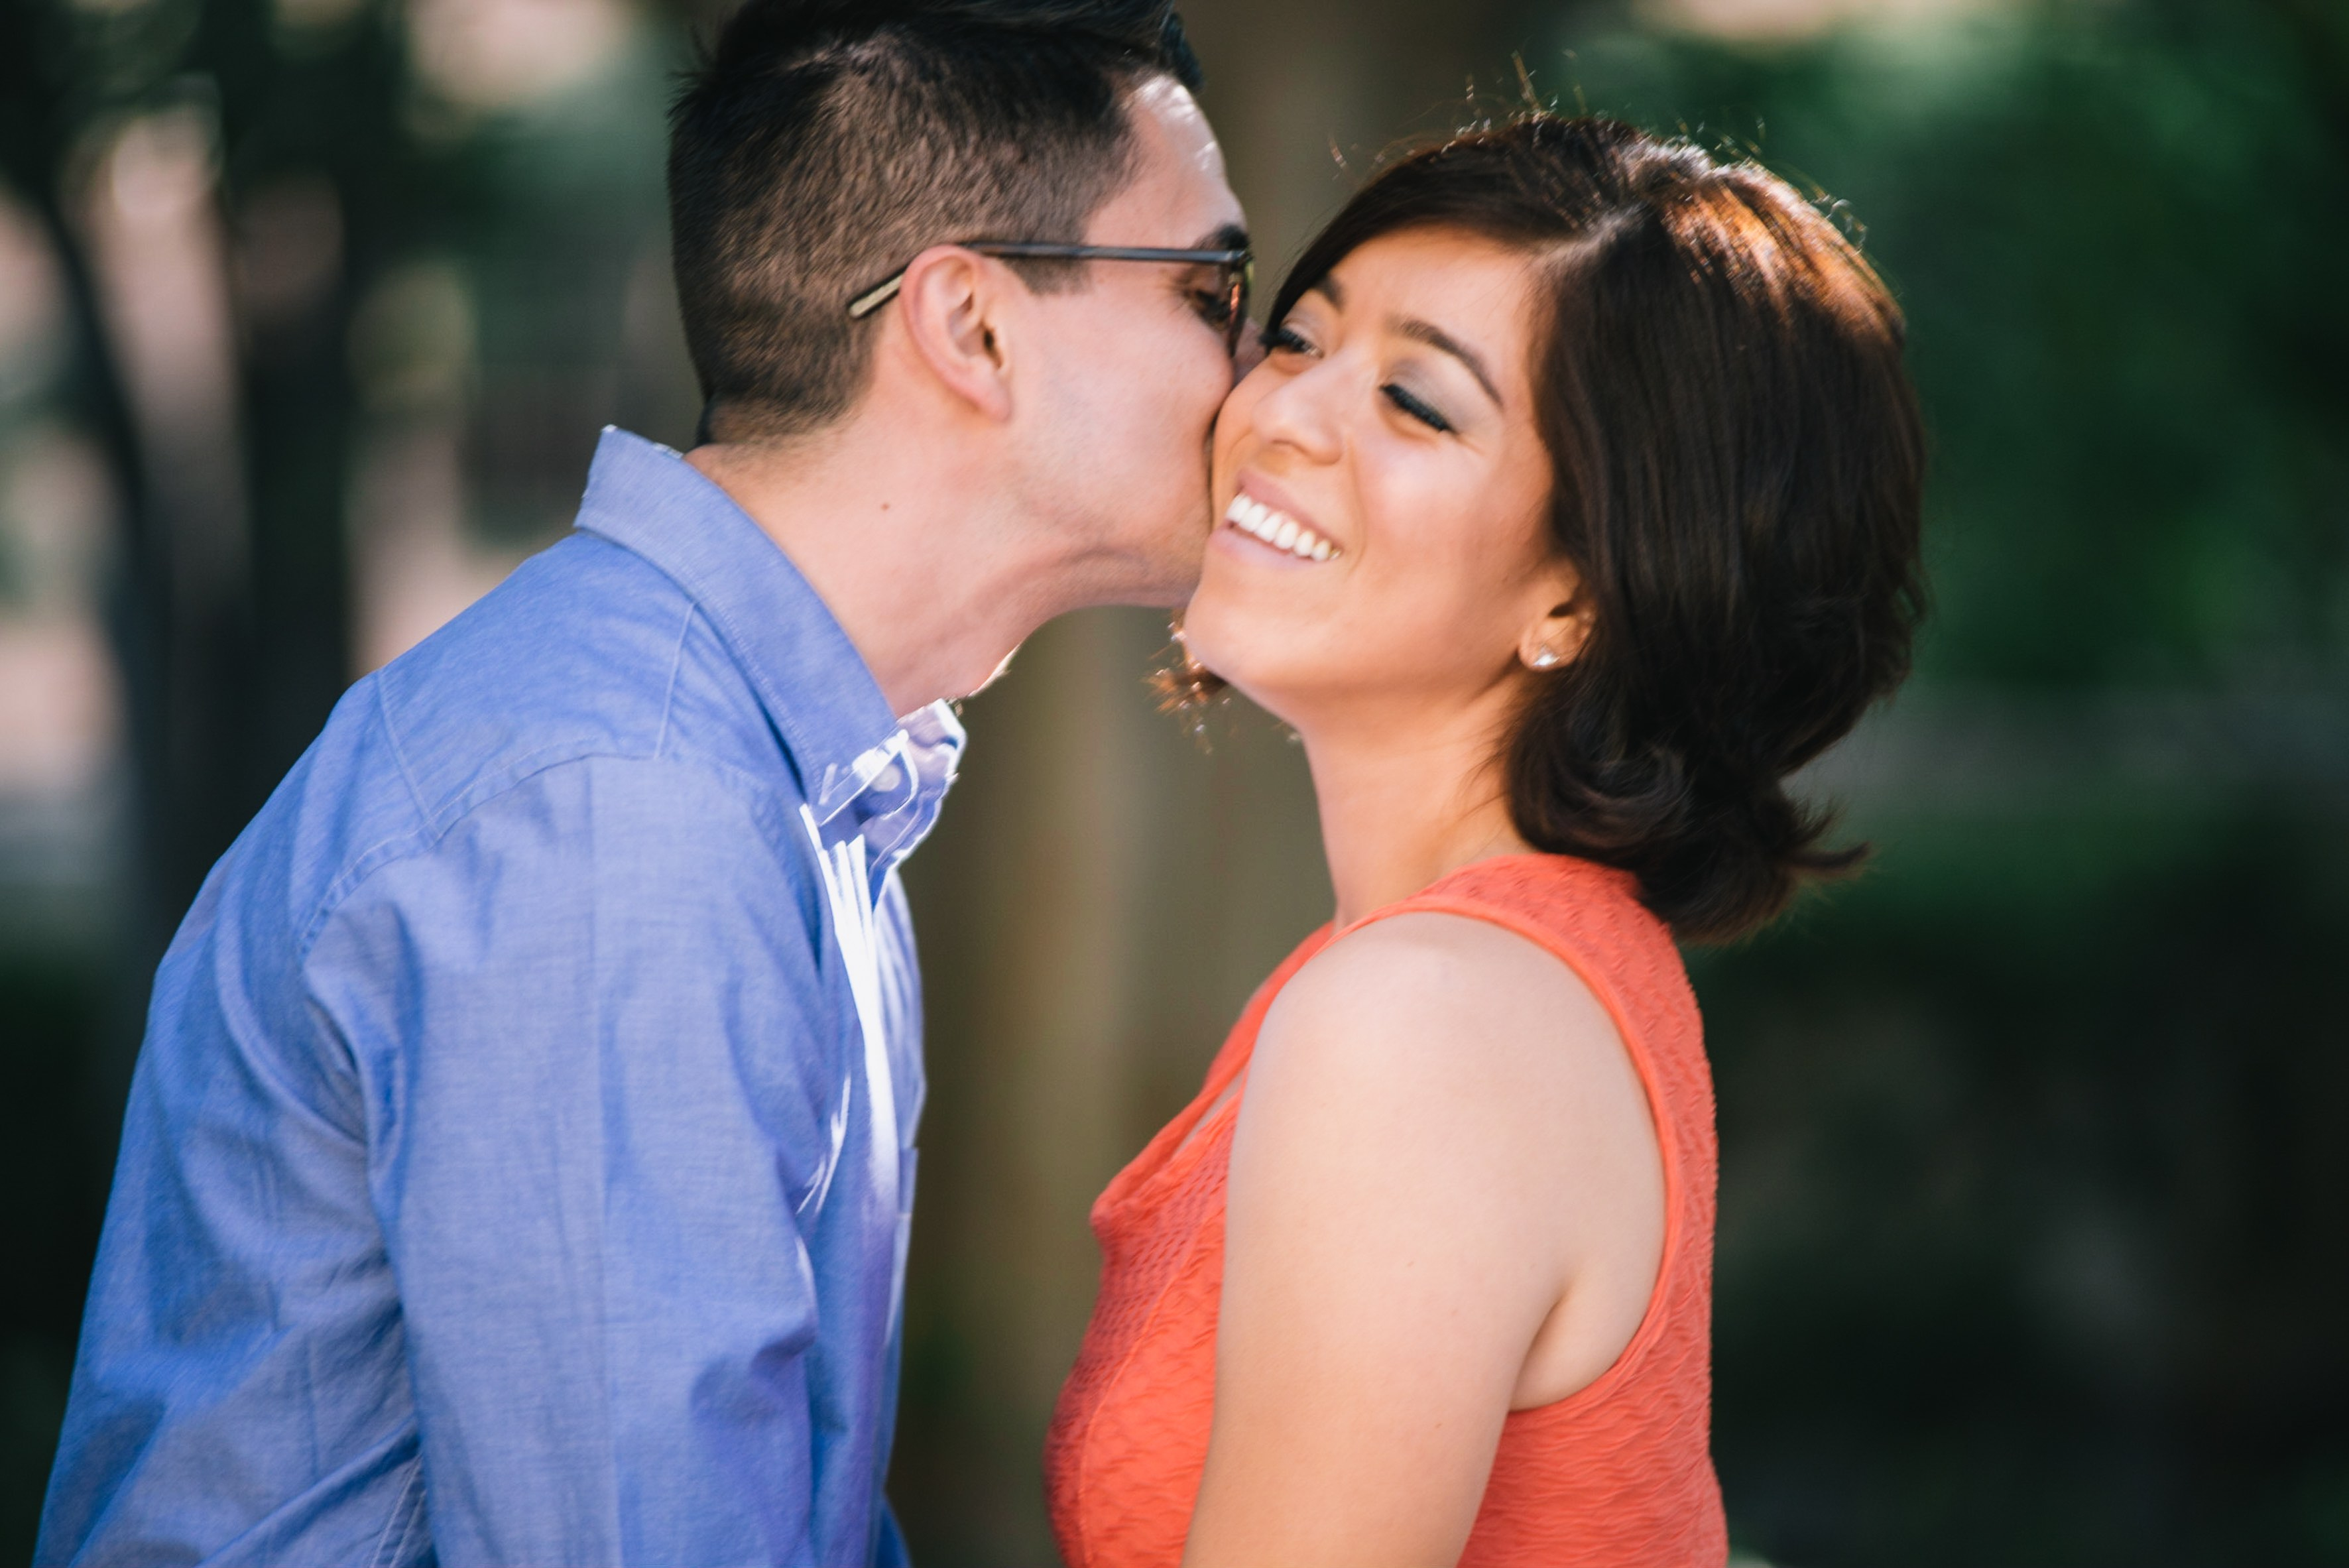 Wedding - The Los Angeles Public Library | Wedding Photography and Wedding Videography